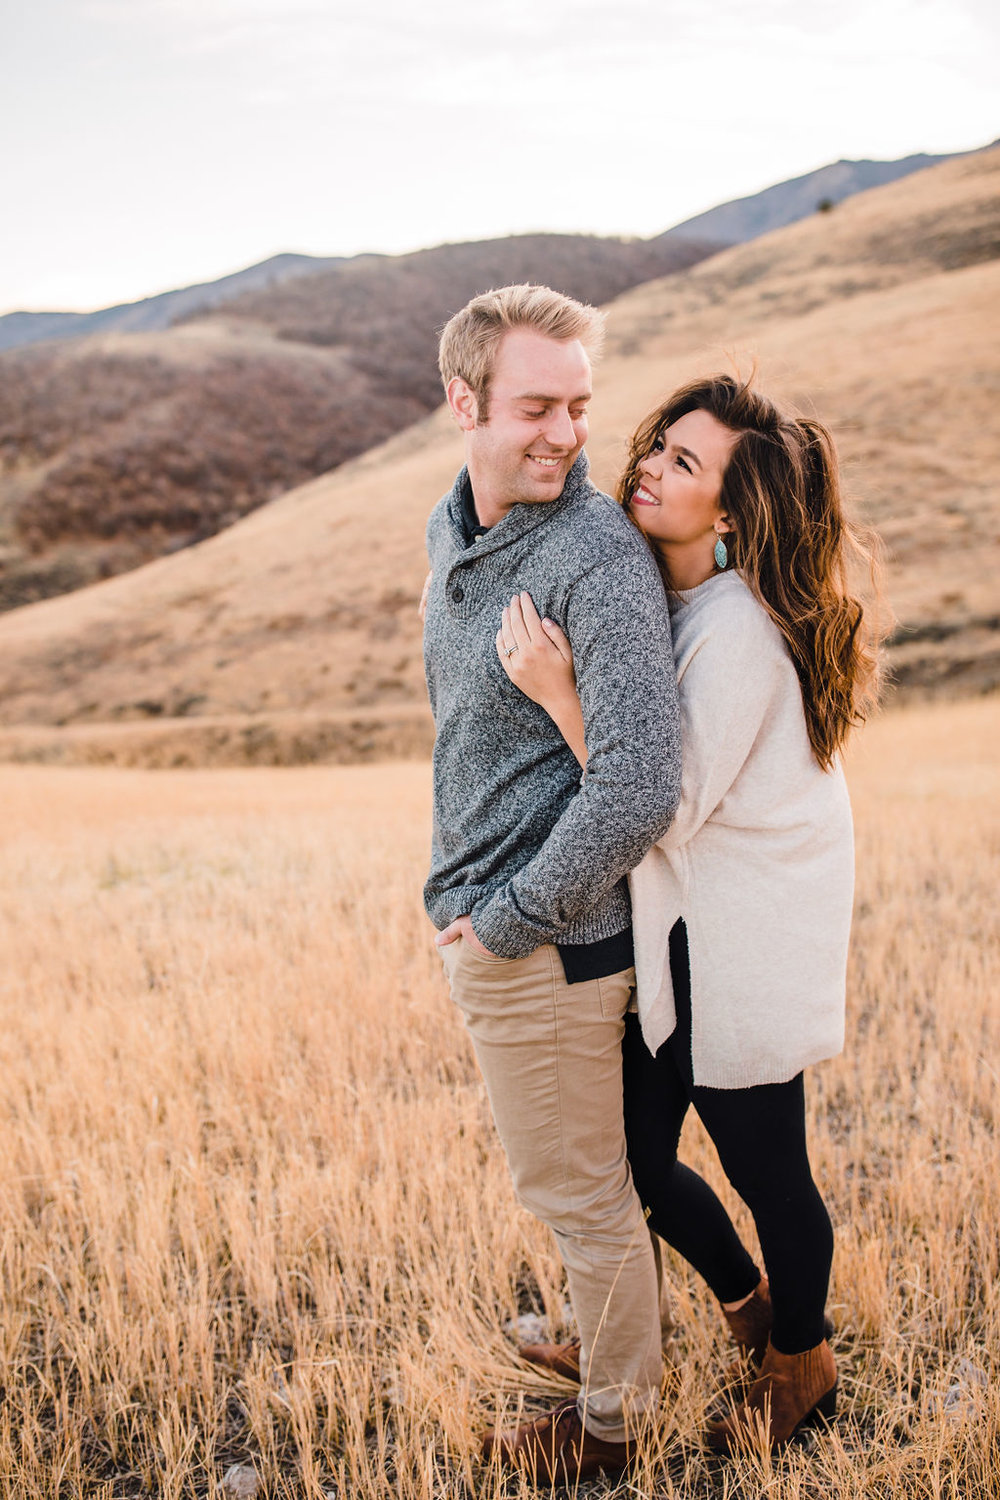 engagement photos northern utah mountains fall autumn classy cozy outfits snuggling couple calli richards